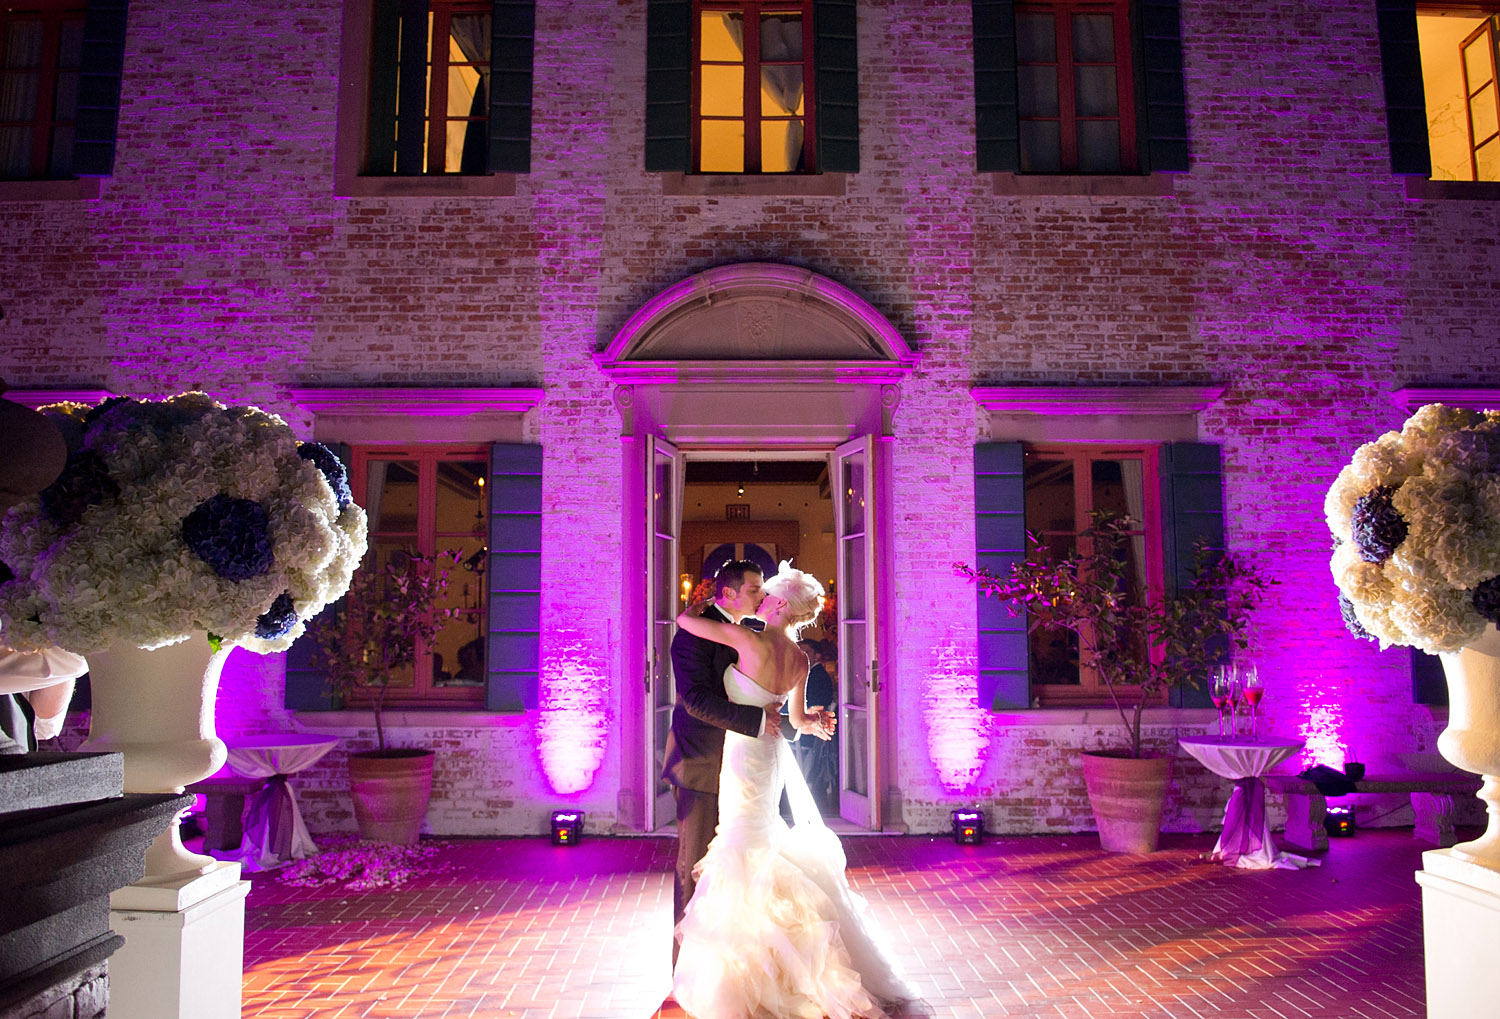 the bride and groom share their first dance on the terrace of the Villa Terrace Italian Wedding Venue photographed by Destination WEdding photographer, Lexia Frank who photographed this wedding on film